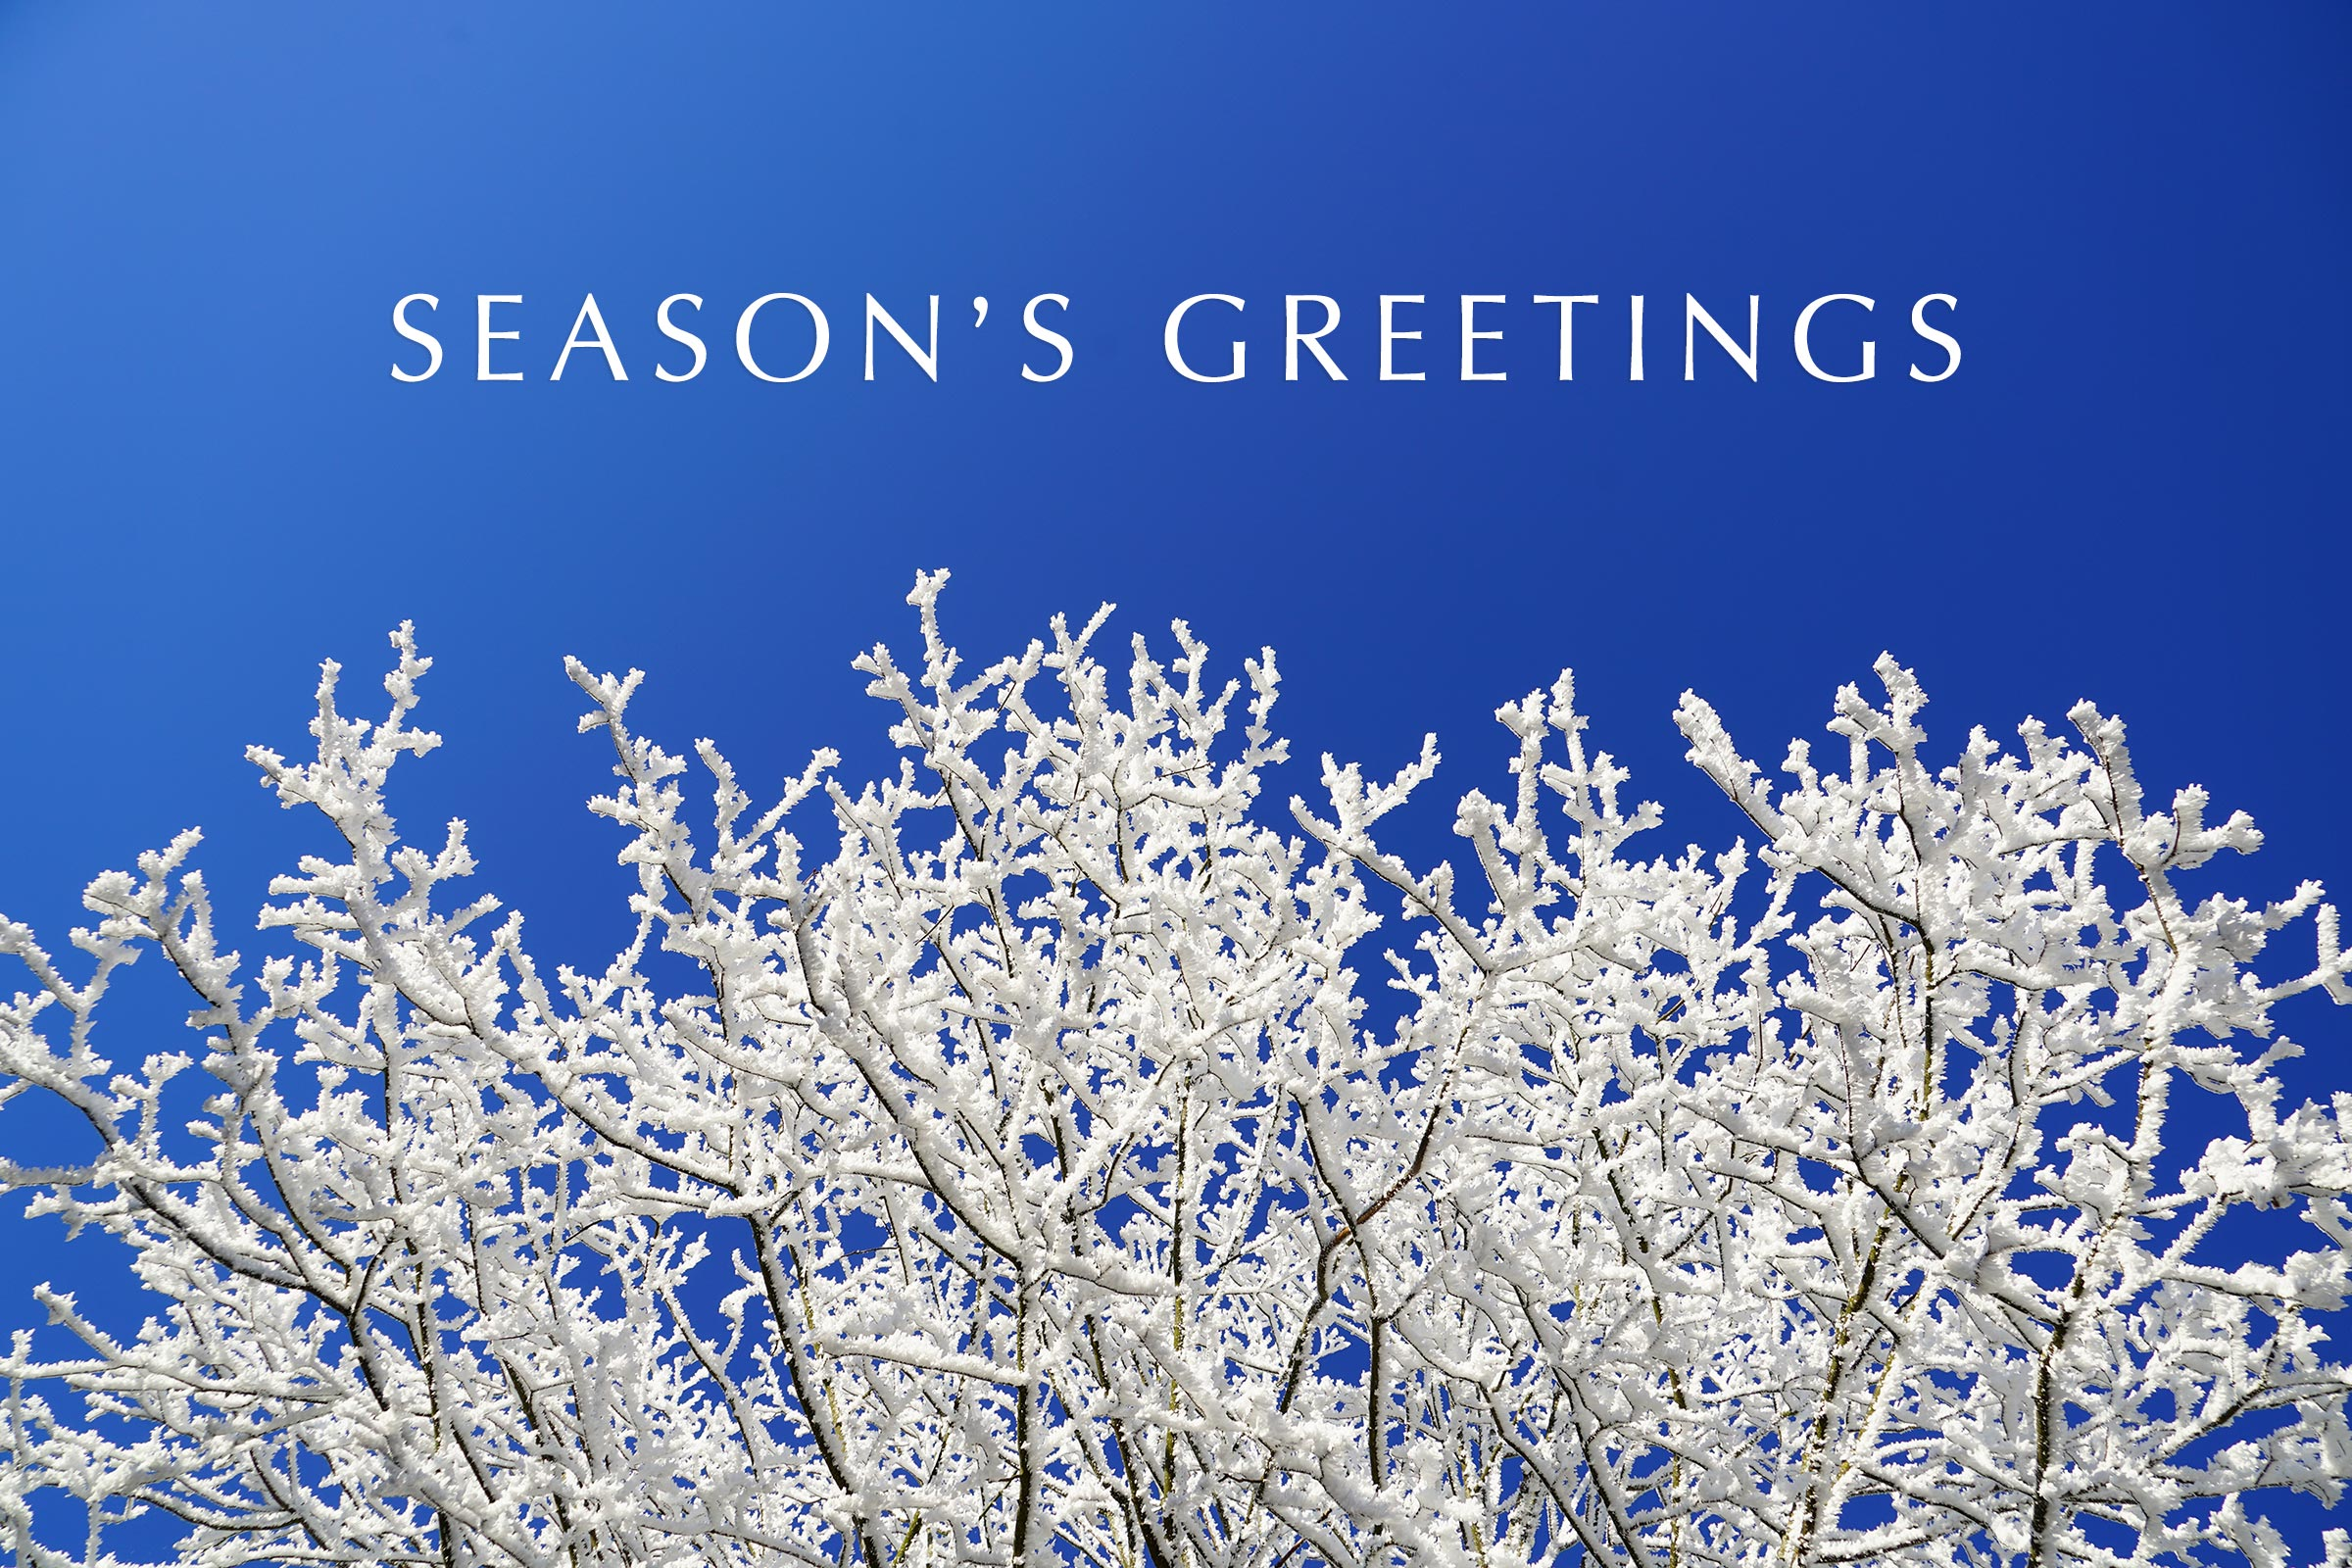 download 15 Seasons Greetings Cards Stock Images HD 2400x1600